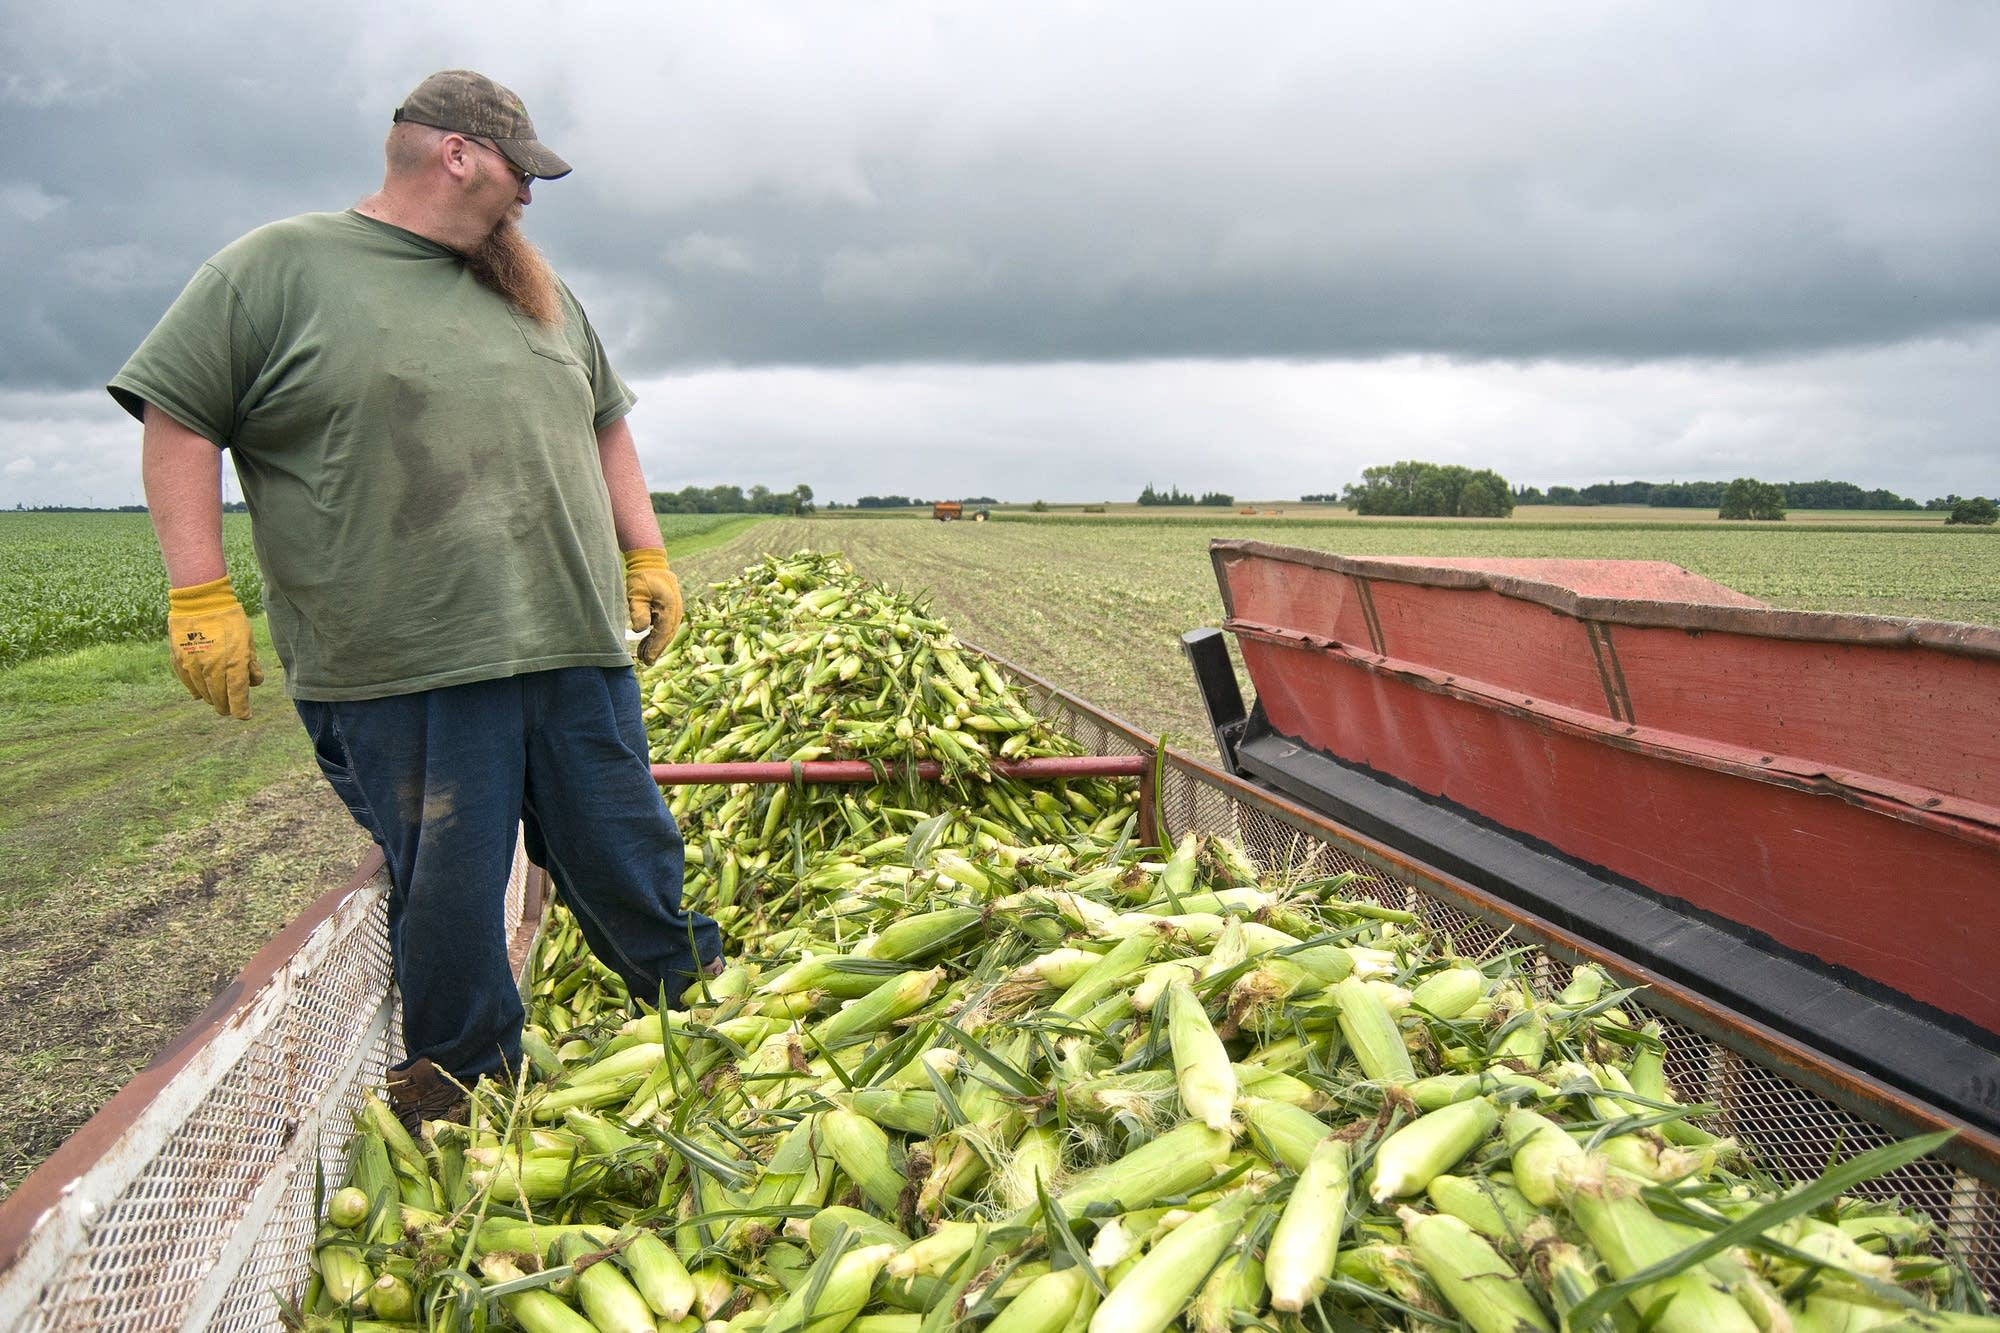 Shane Bauer looks over the sweet corn.